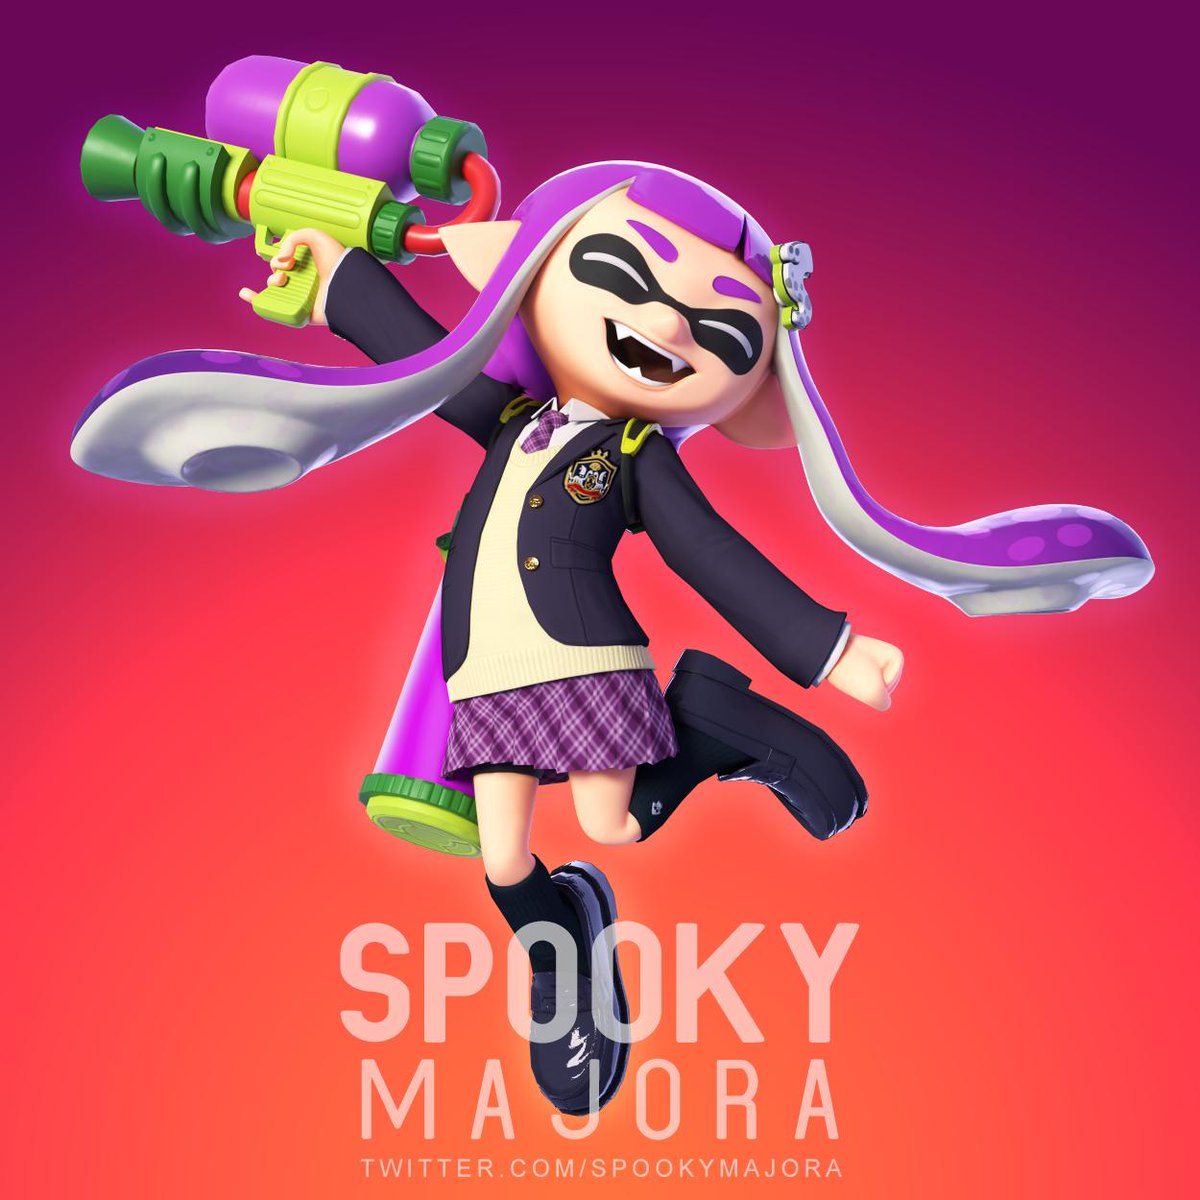 Finished a commission of the Inkling for @mgiggsart!  #SuperSmashBrosUltimate  #SmashBrosUltimate  #Nintendo #SmashBros  #Splatoon #Splatoon2 #Inkling #gaming #commissions #commissionsopen<br>http://pic.twitter.com/7AoJ6T7JoC